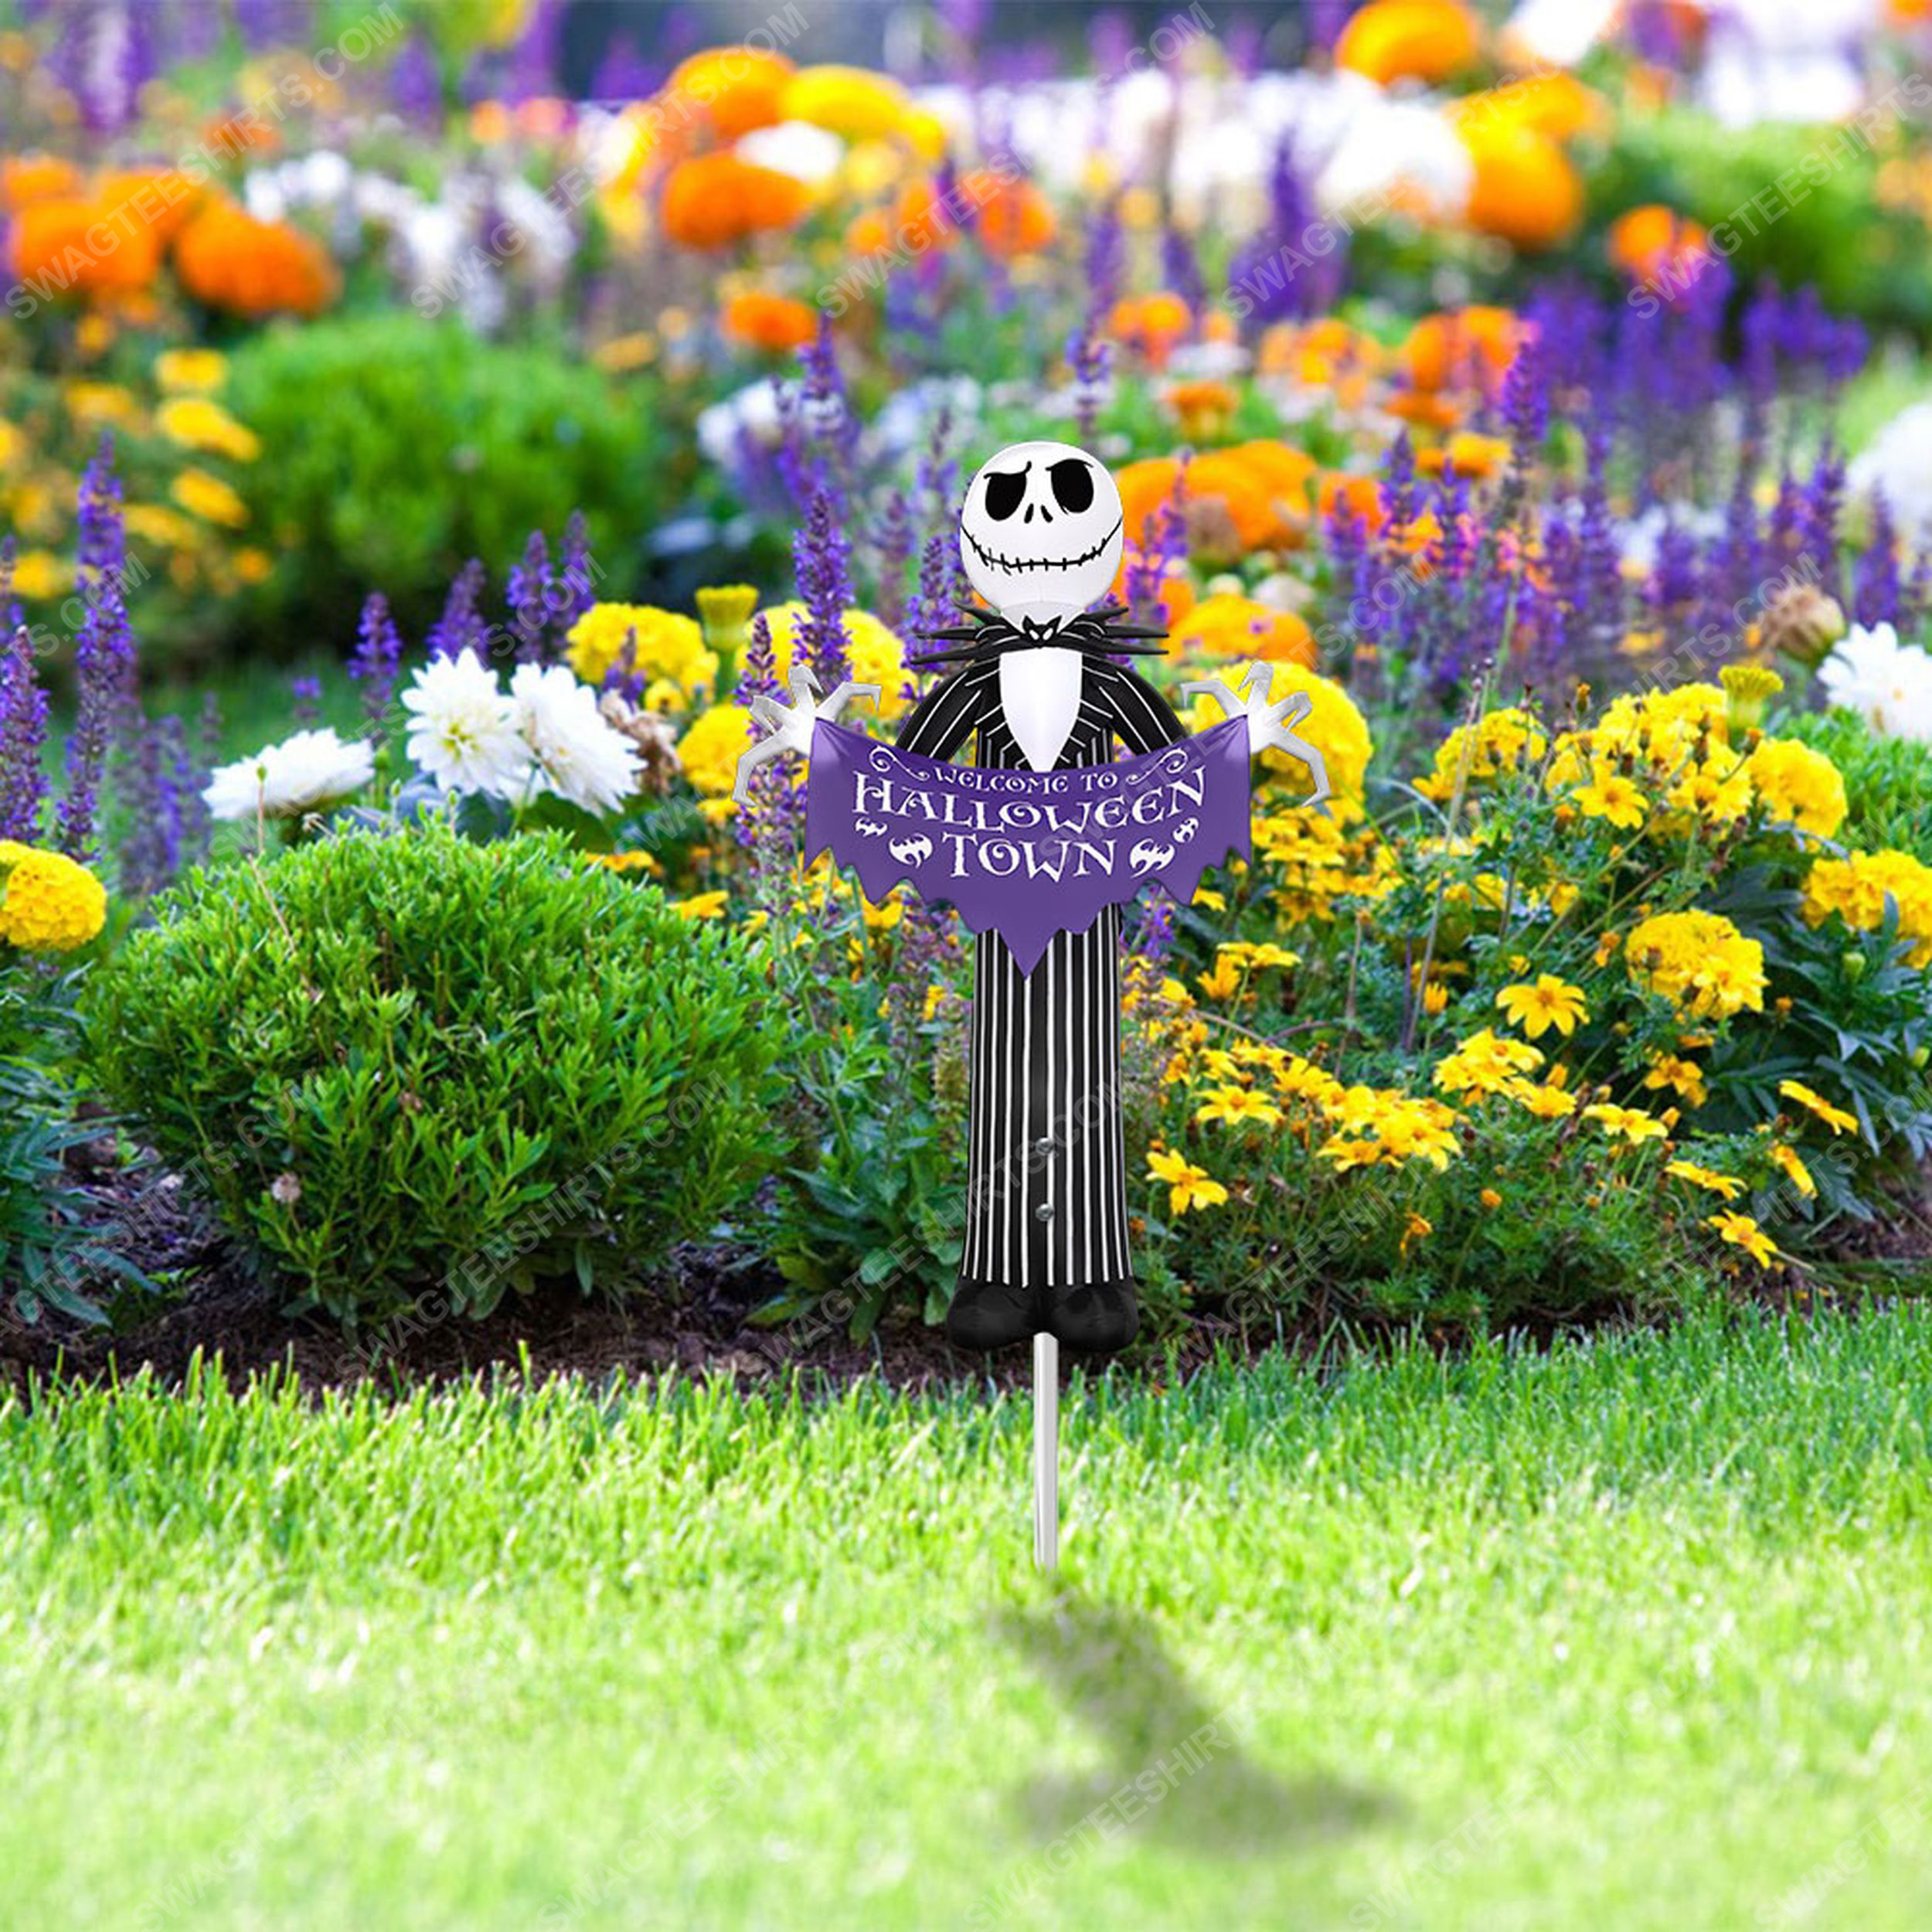 Jack skellington welcome to halloween town yard sign 5(1)